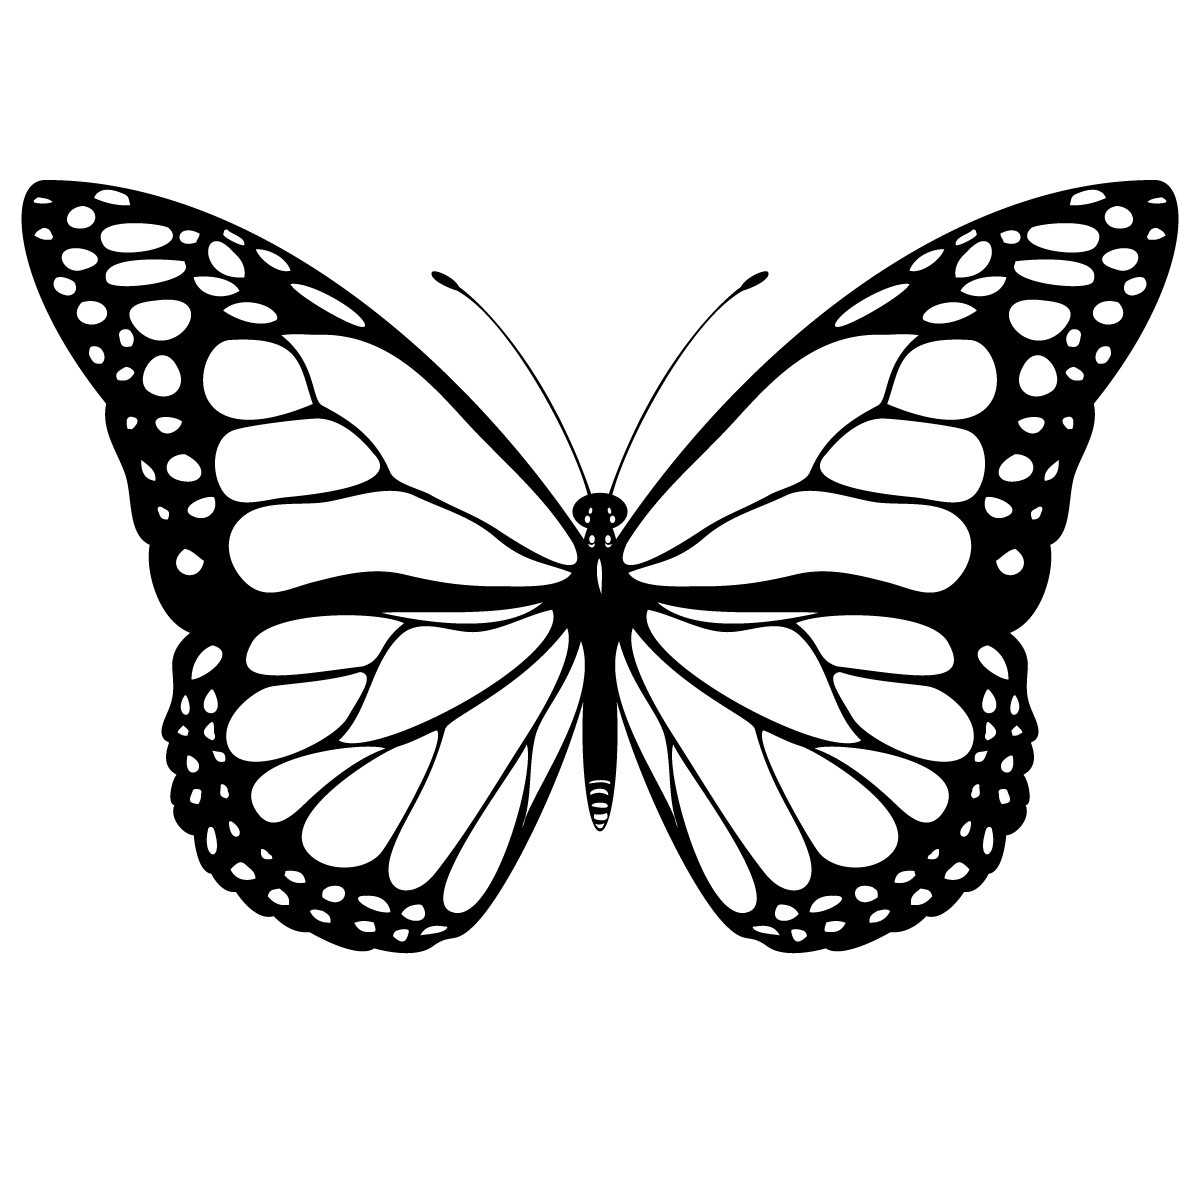 butterflies coloring page free printable butterfly coloring pages for kids coloring butterflies page